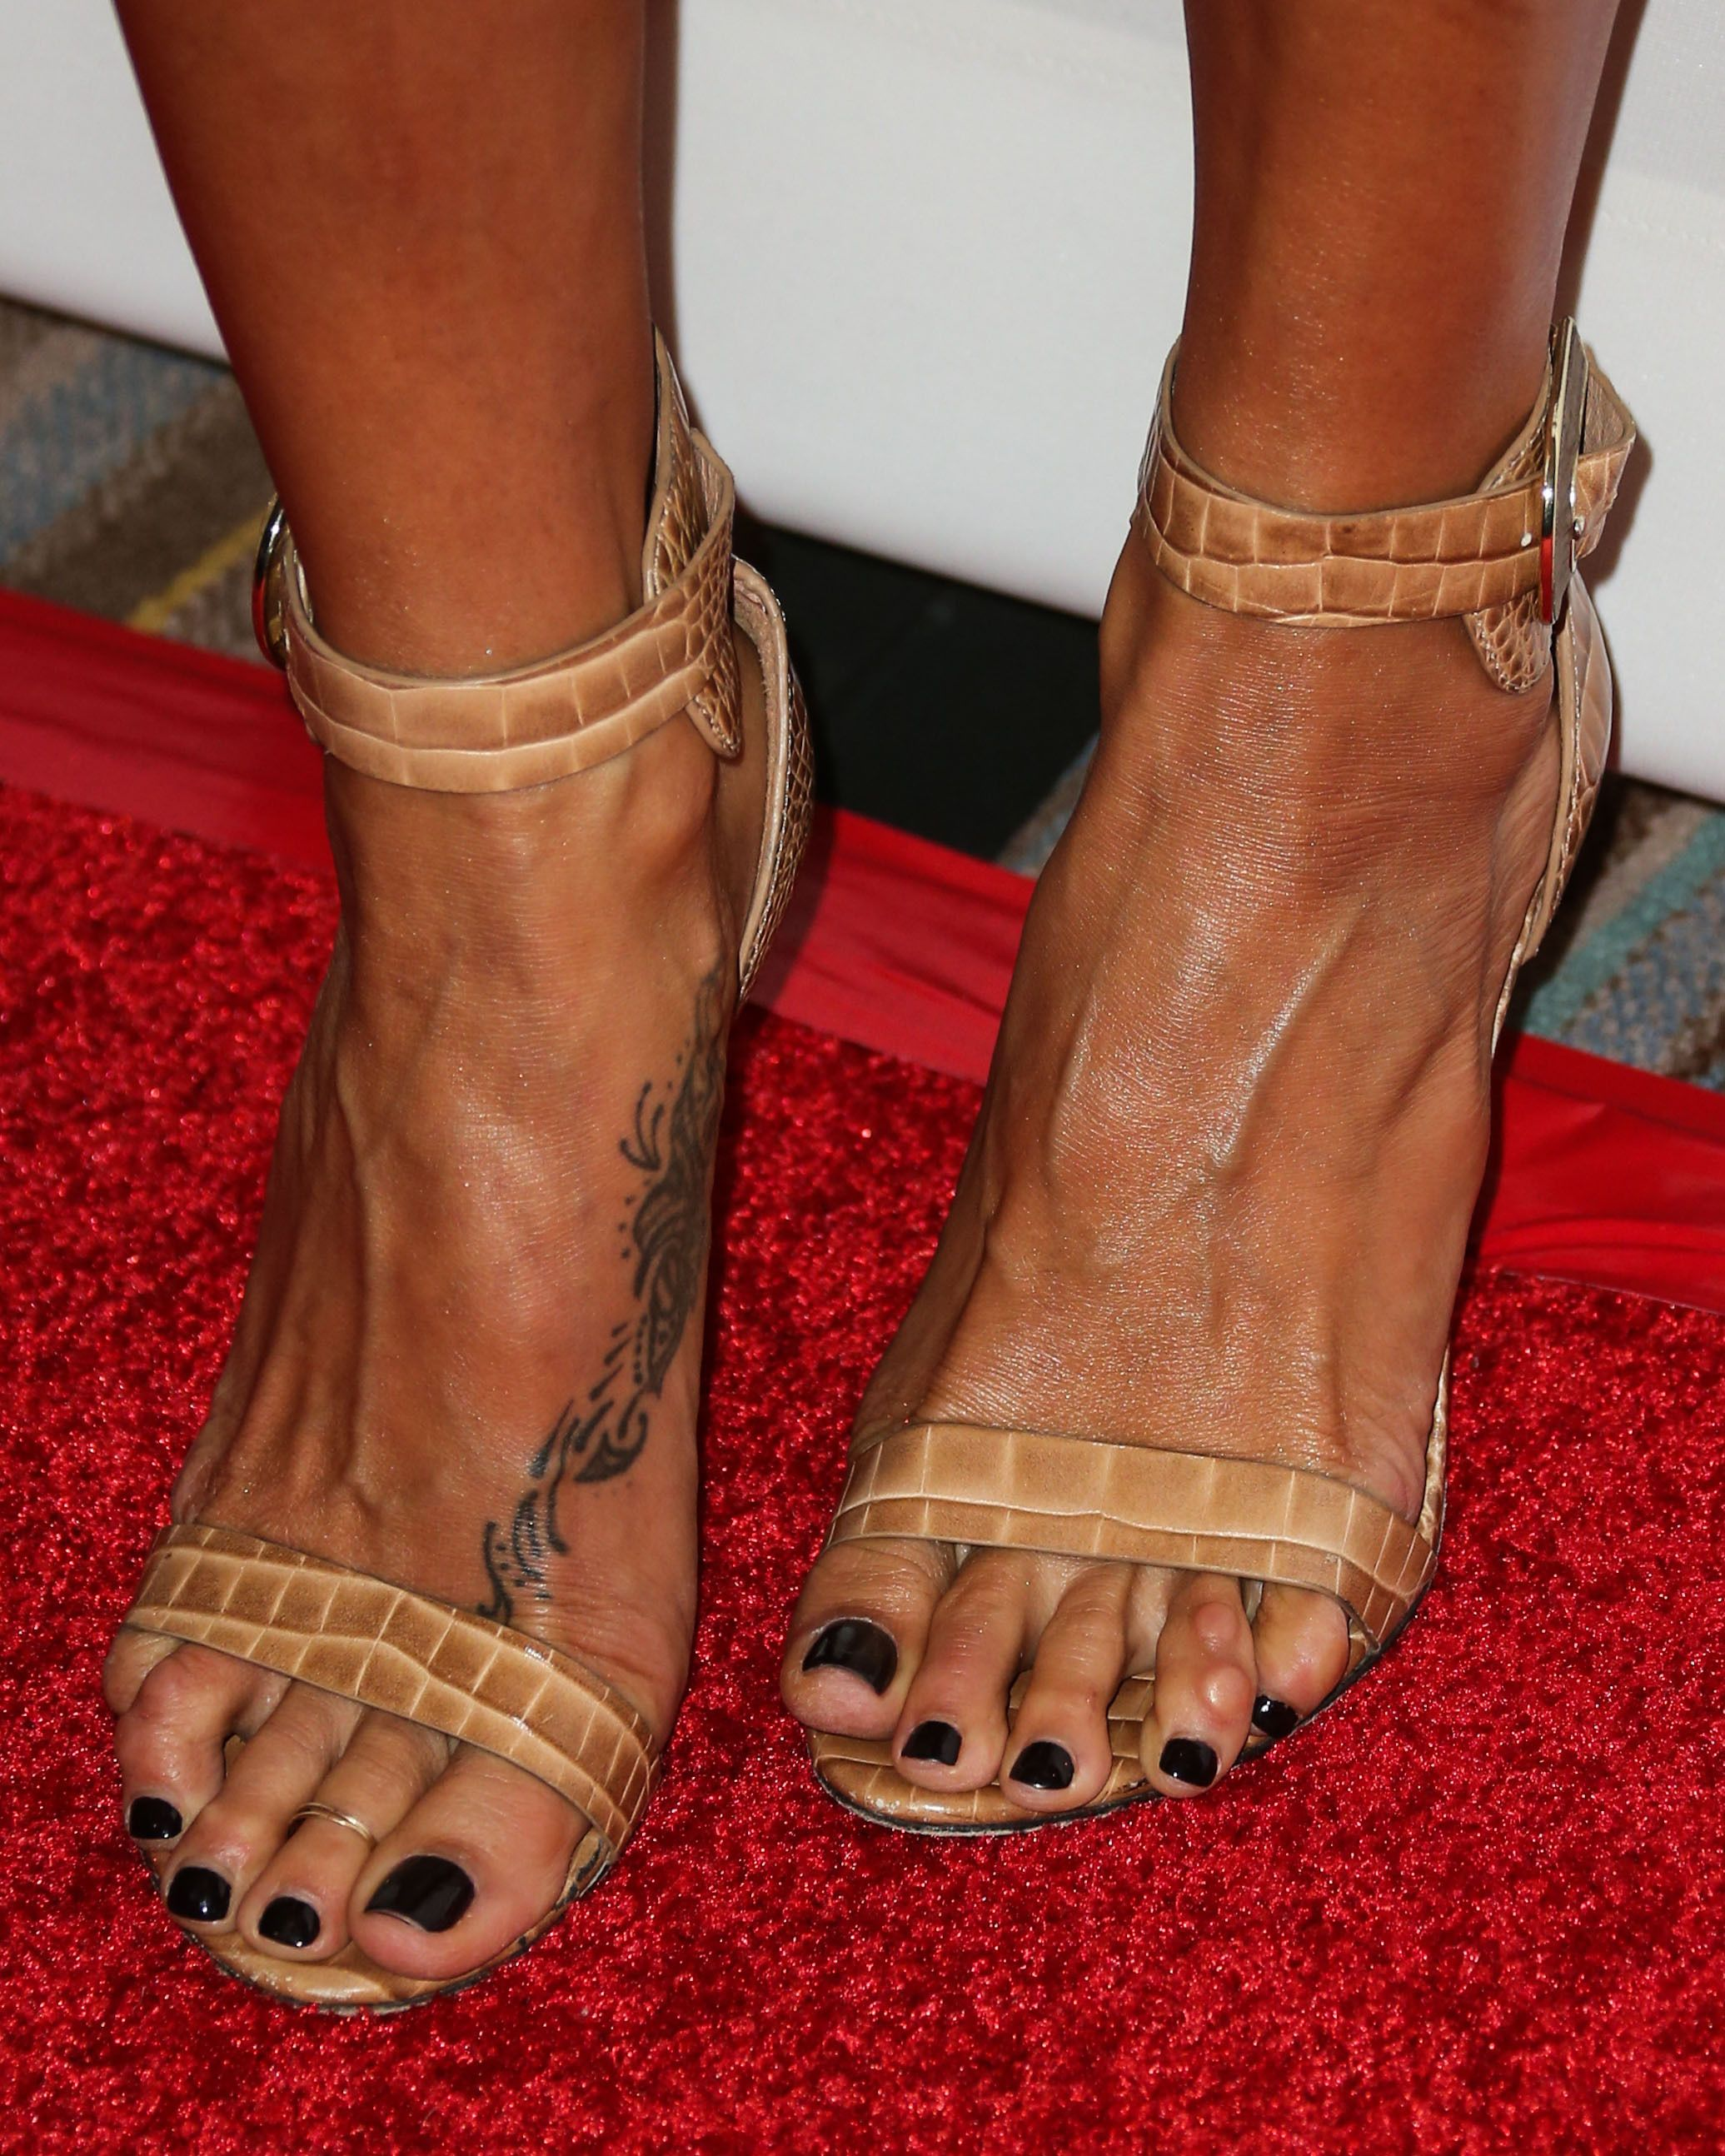 International Celebrity Feet's 'pic Of The Day' Hq Images Of Celebrity Feet